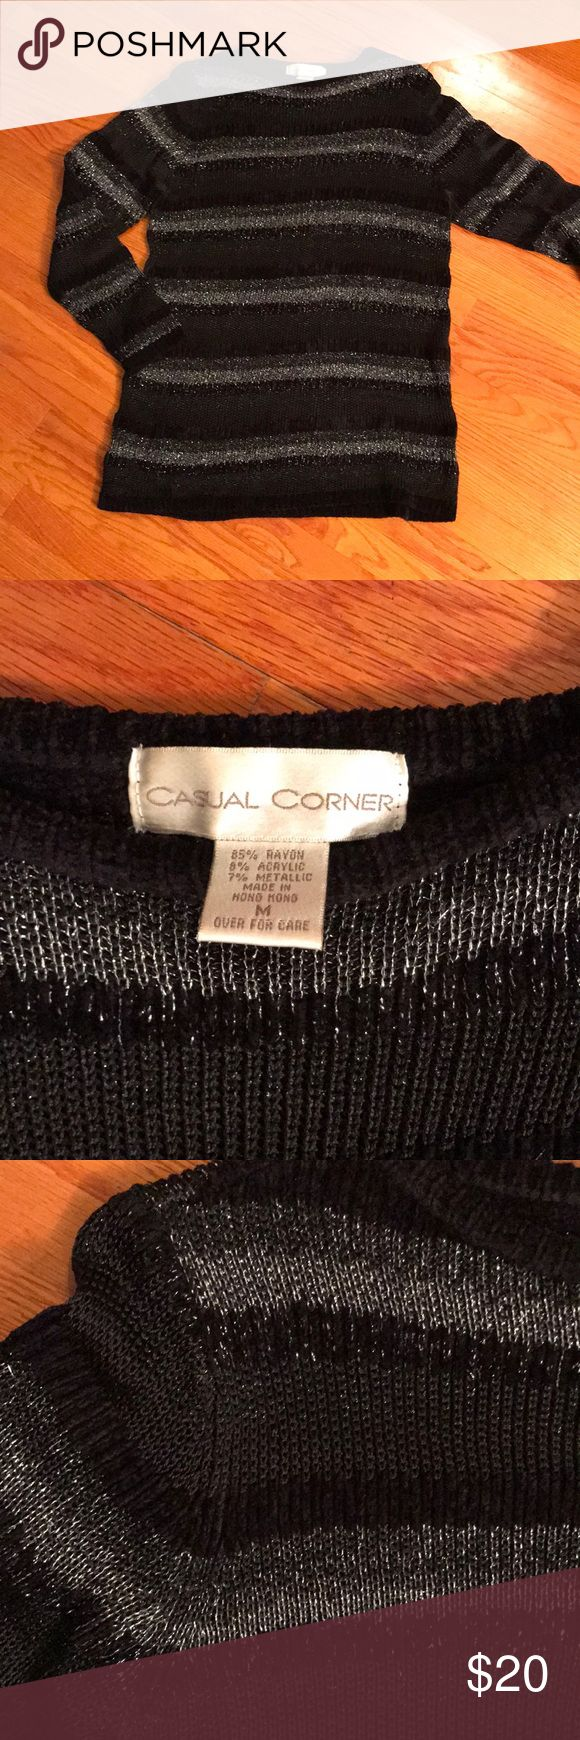 Casual Corner thick black silver holiday sweater Nick thick good quality black and silver striped holiday sweater.  Casual Corner Brand   Size medium but can fit a large Casual Corner Sweaters Crew & Scoop Necks